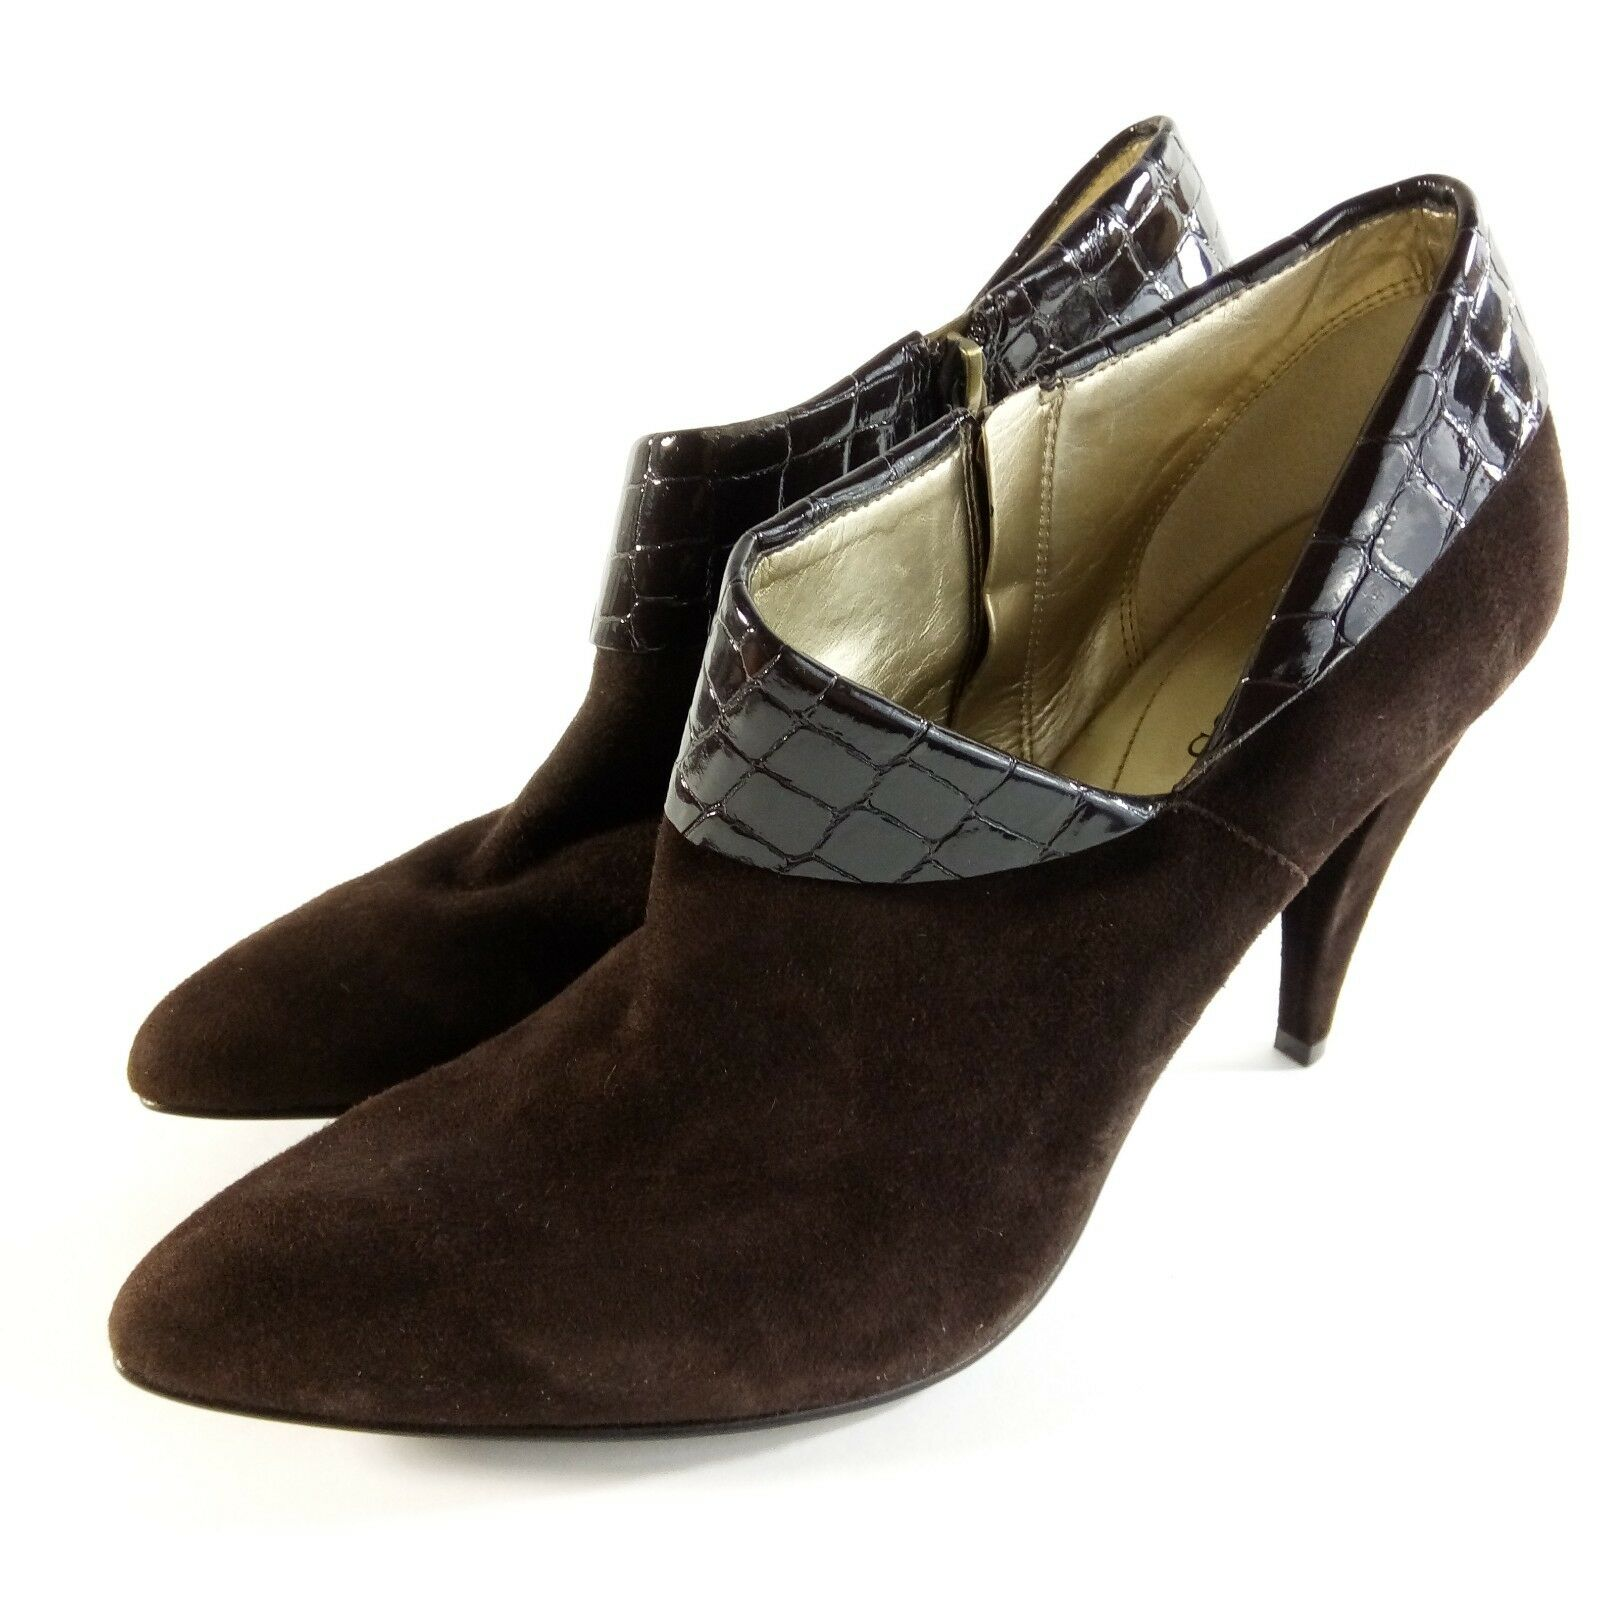 GUESS Booties Braun Leder Suede 4